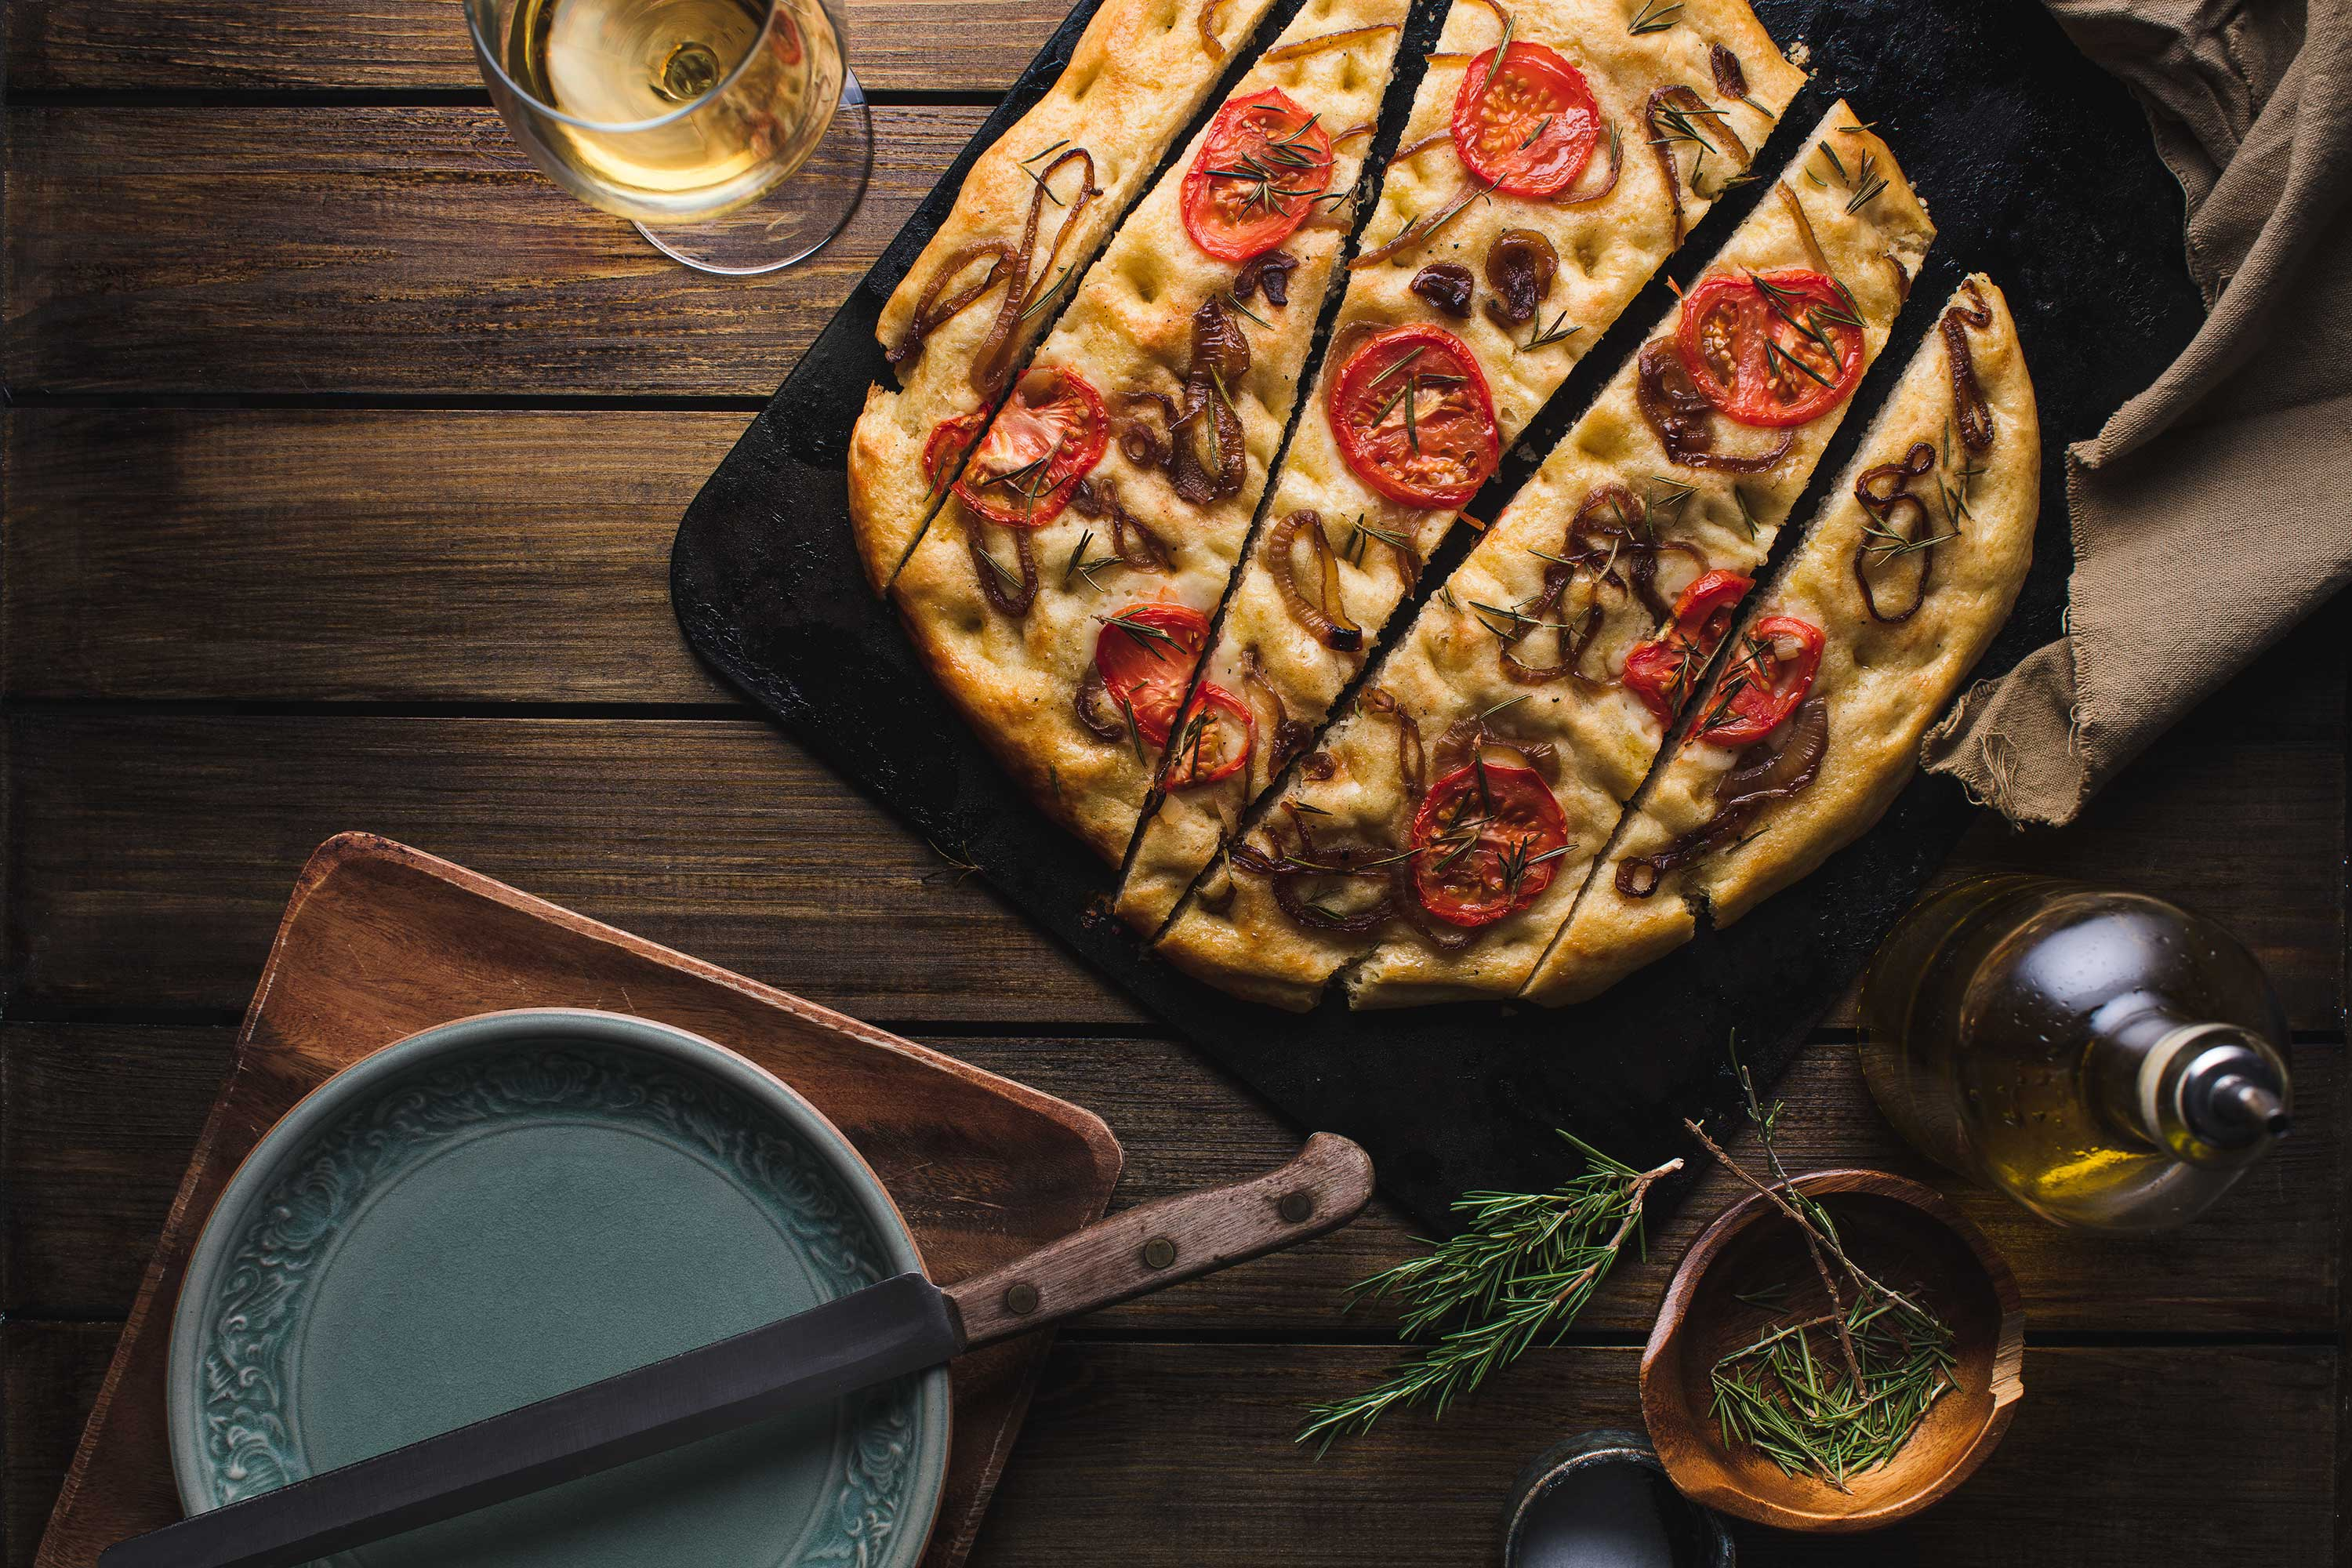 Focaccia Bread using Artificial food photography lighting